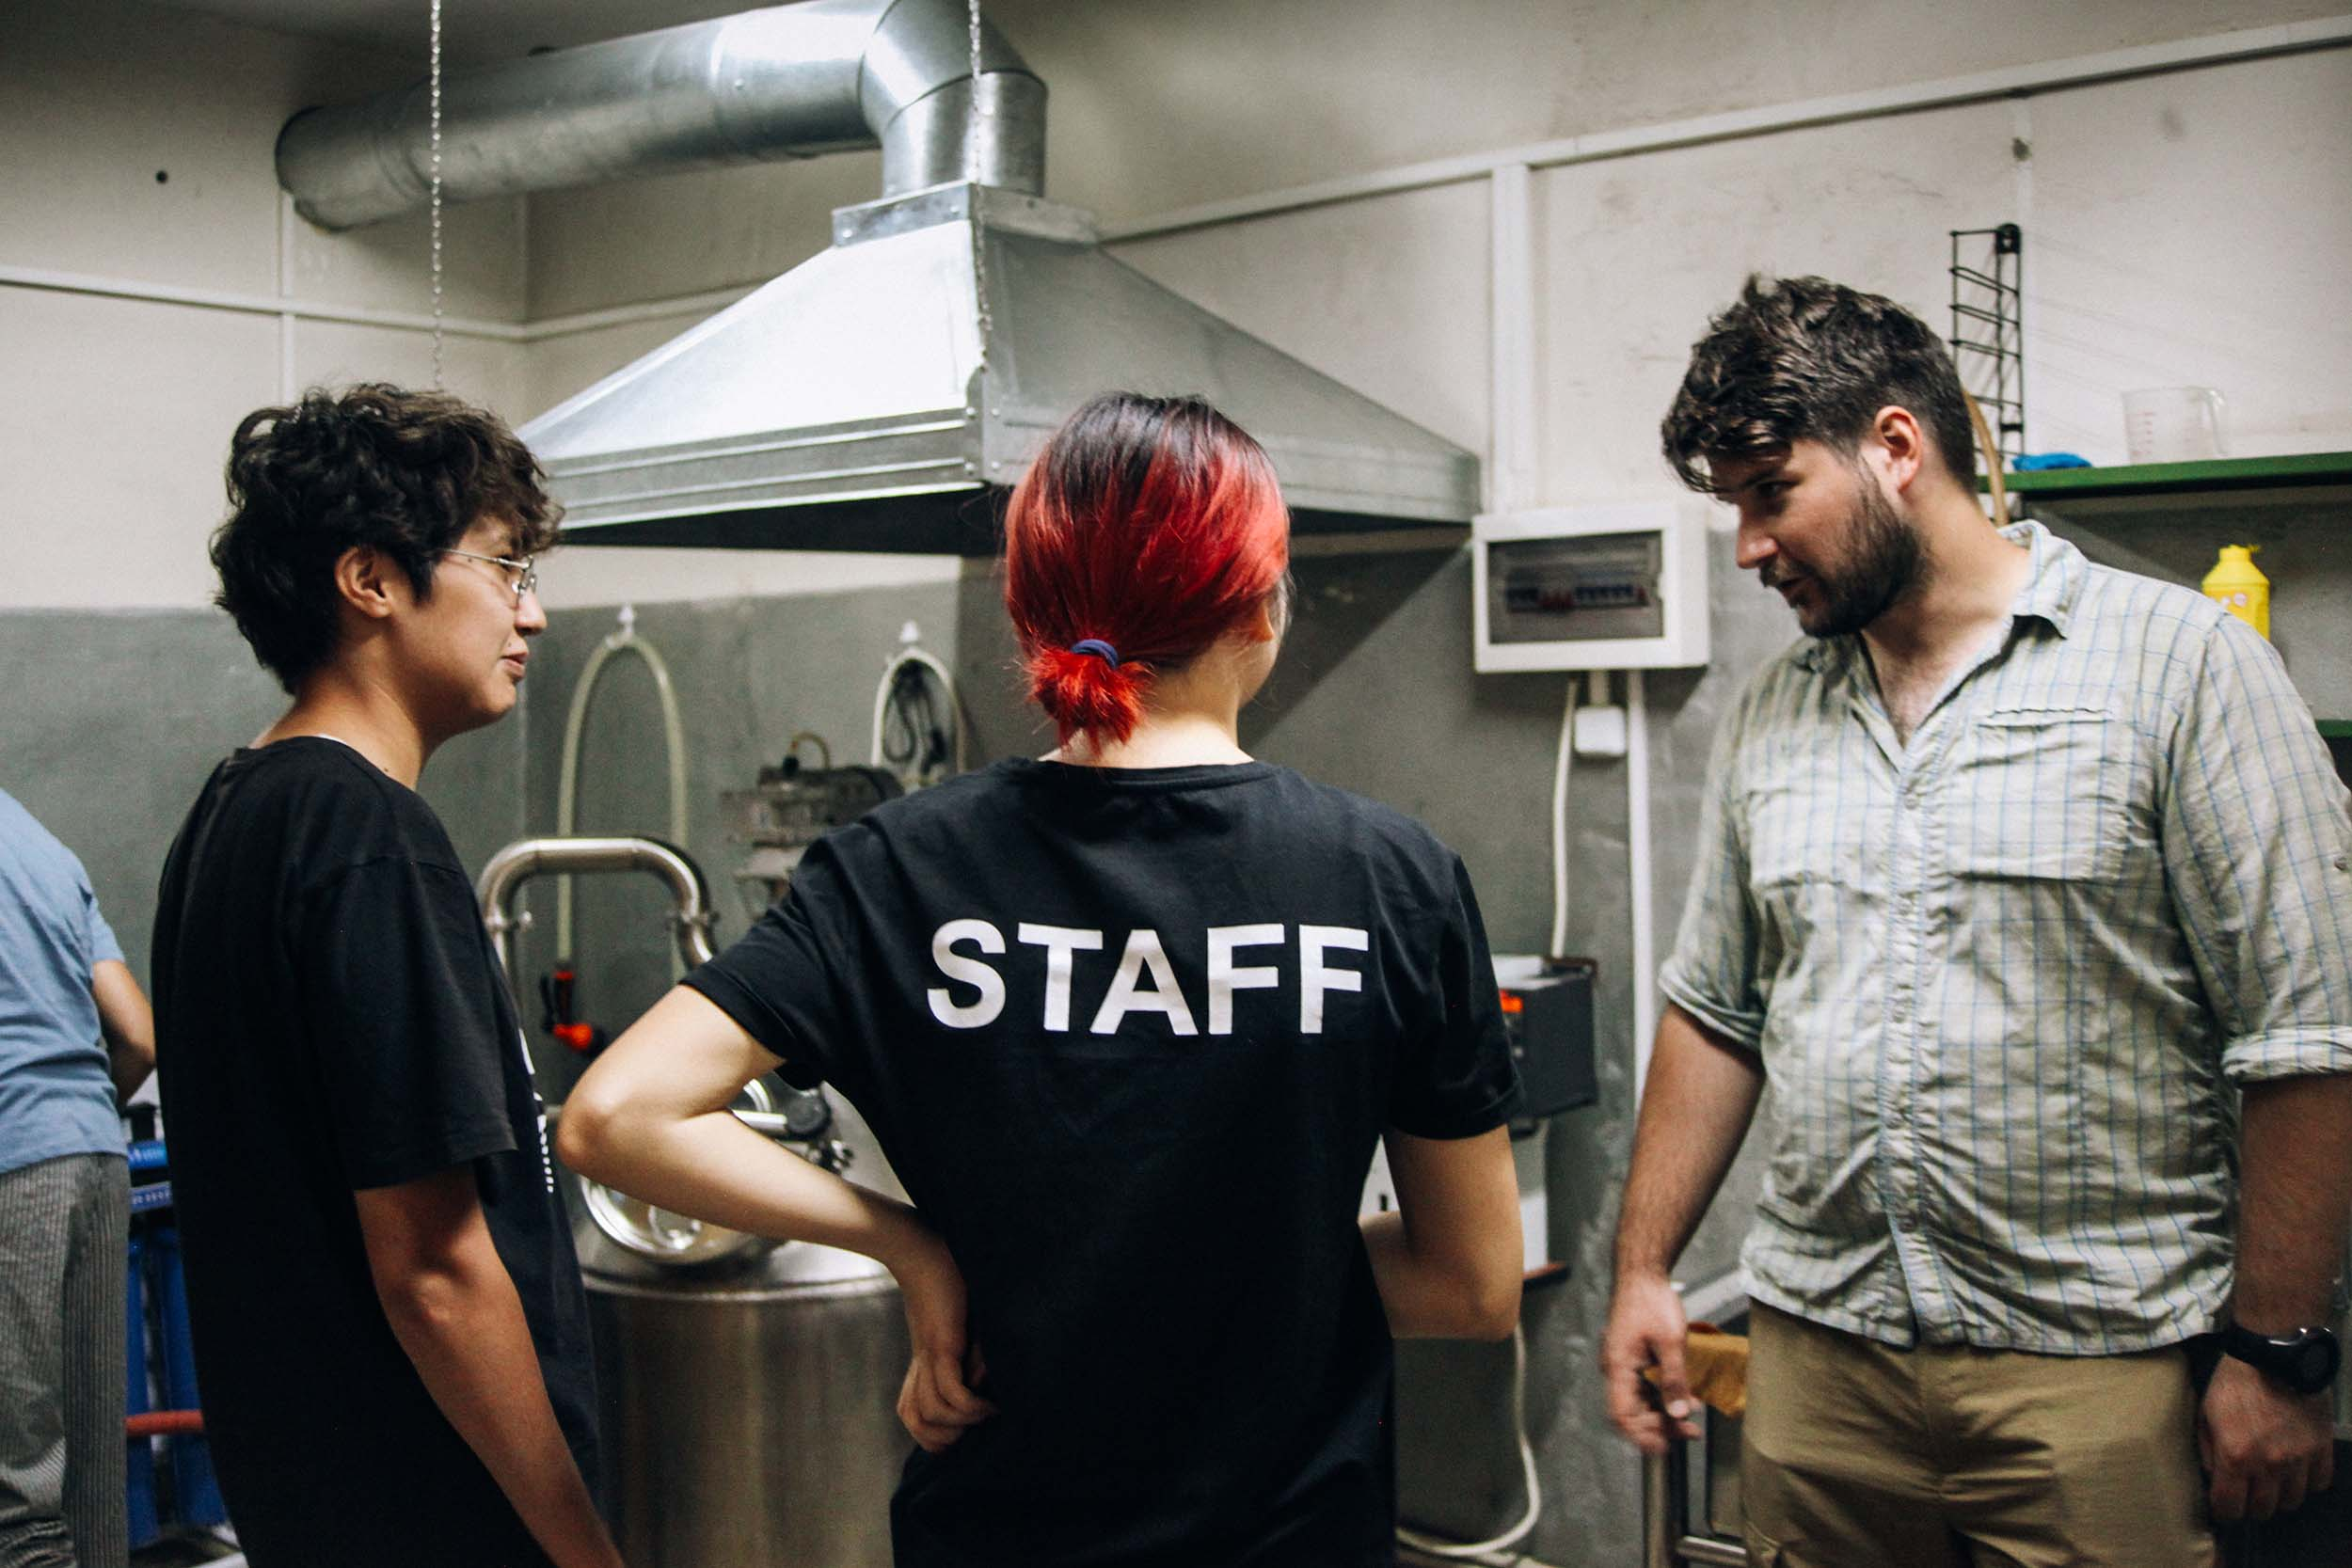 Brewing at Kyrgyzstan's all-female microbrewery